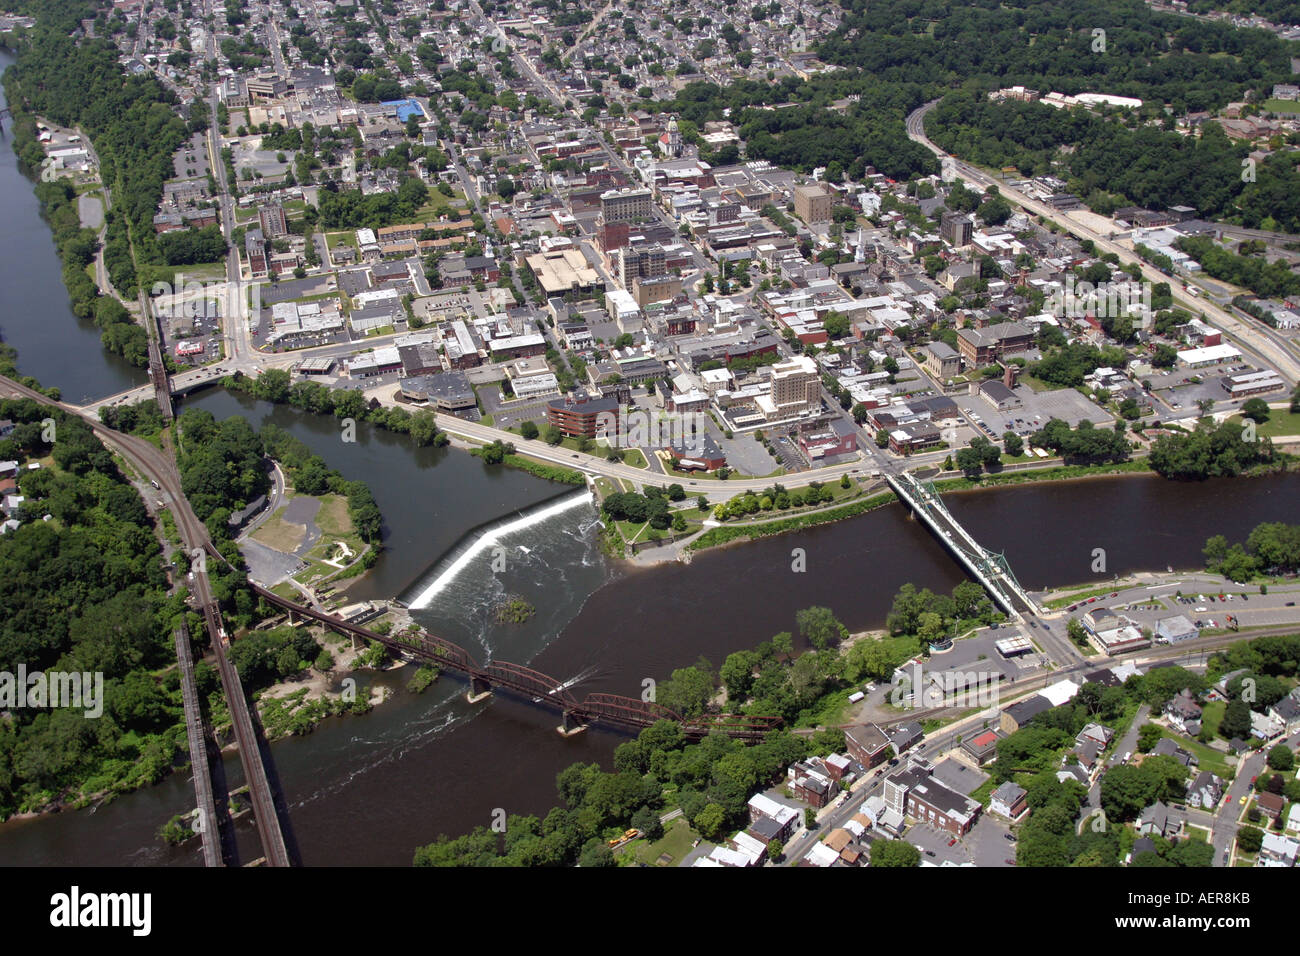 Aerial view of Easton, Pennsylvania, and Phillipsburg, New Jersey